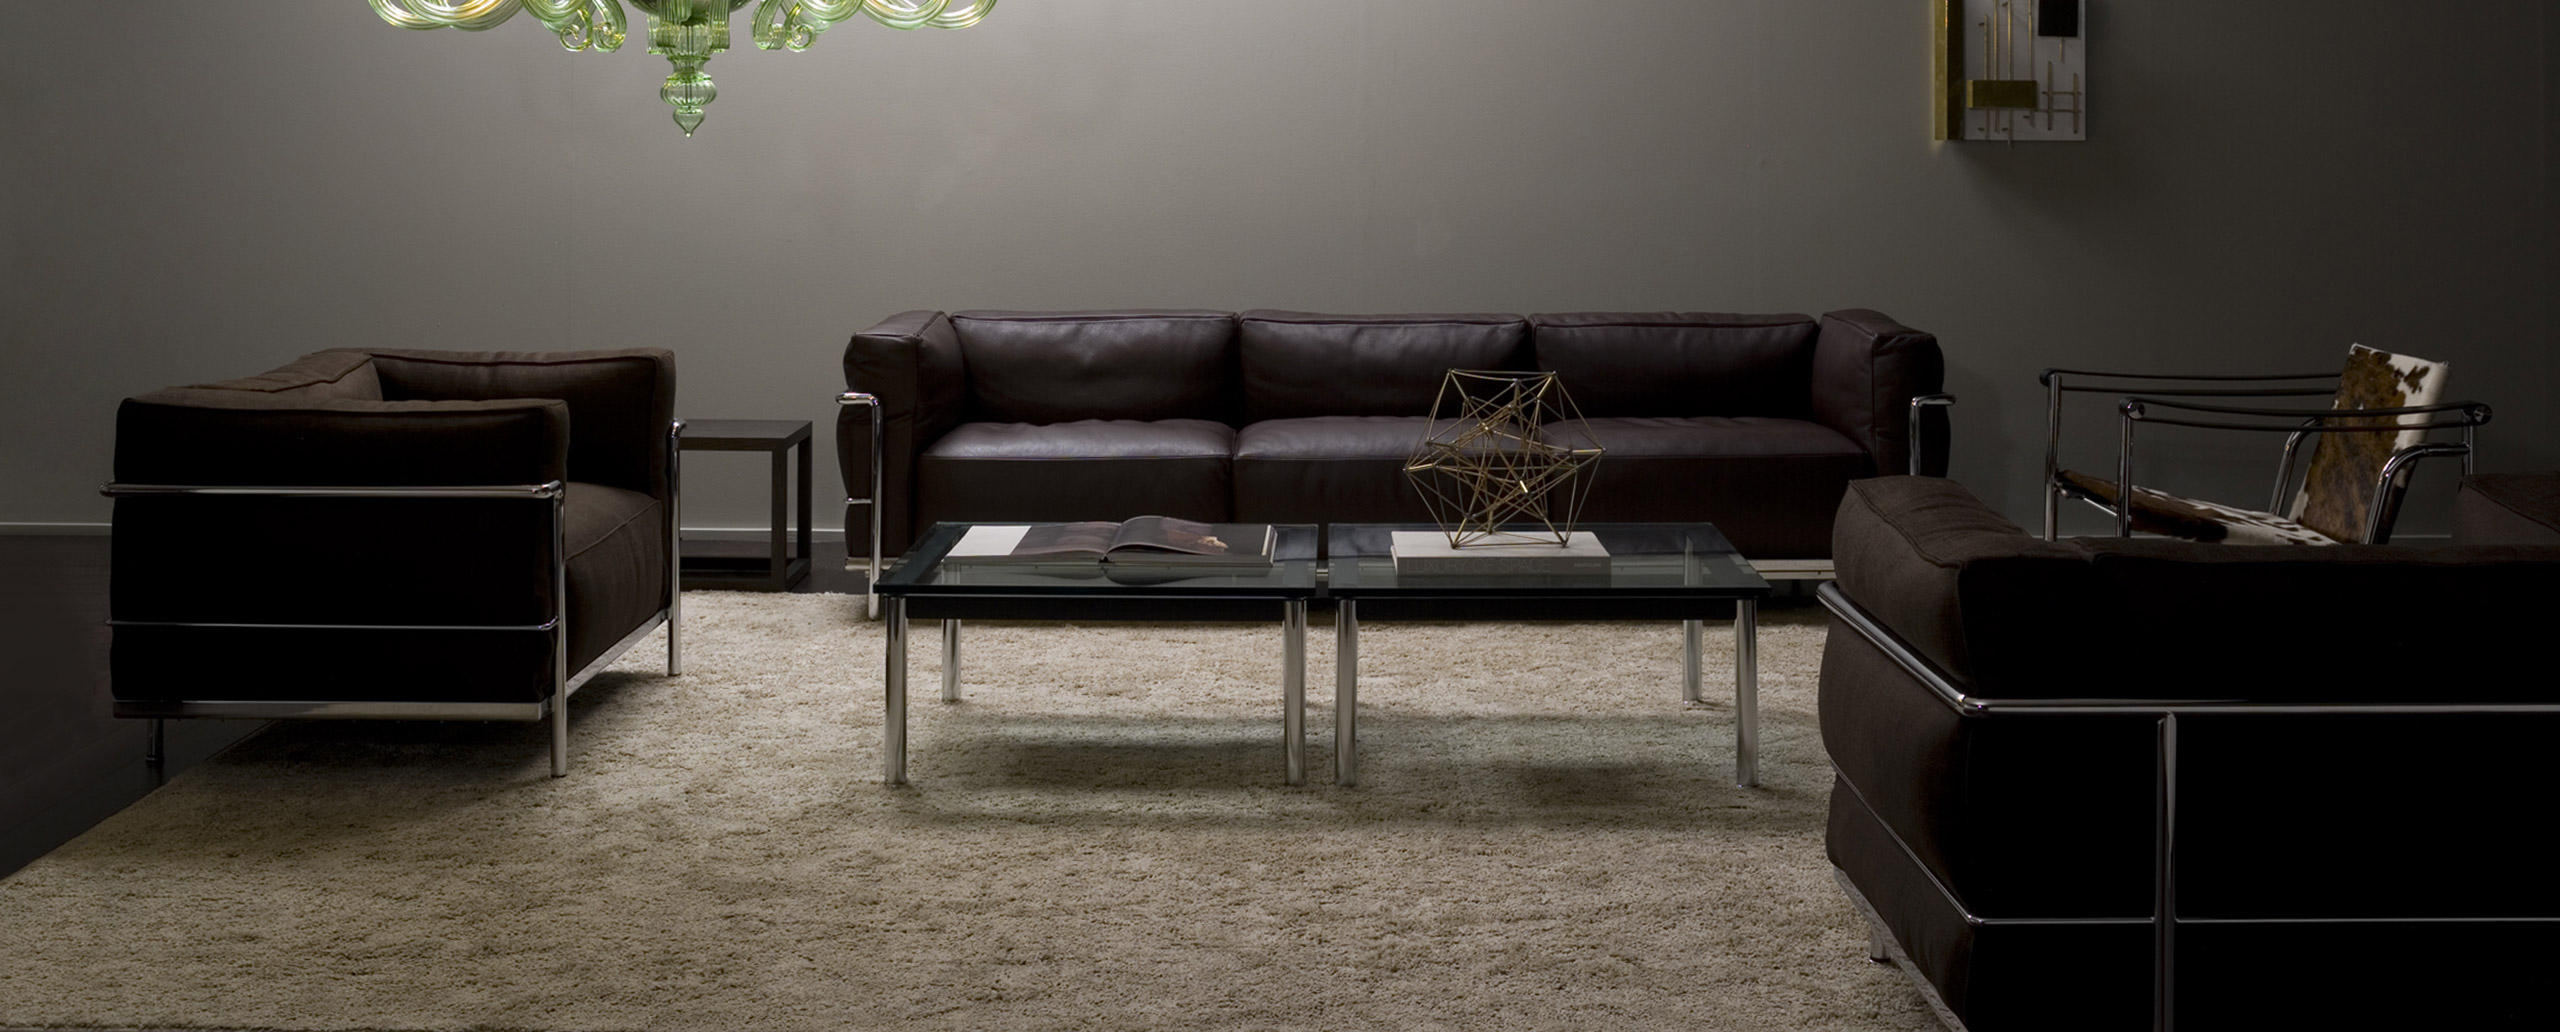 living rooms with black leather sofas home decor ideas for room images lc3 cassina le corbusier